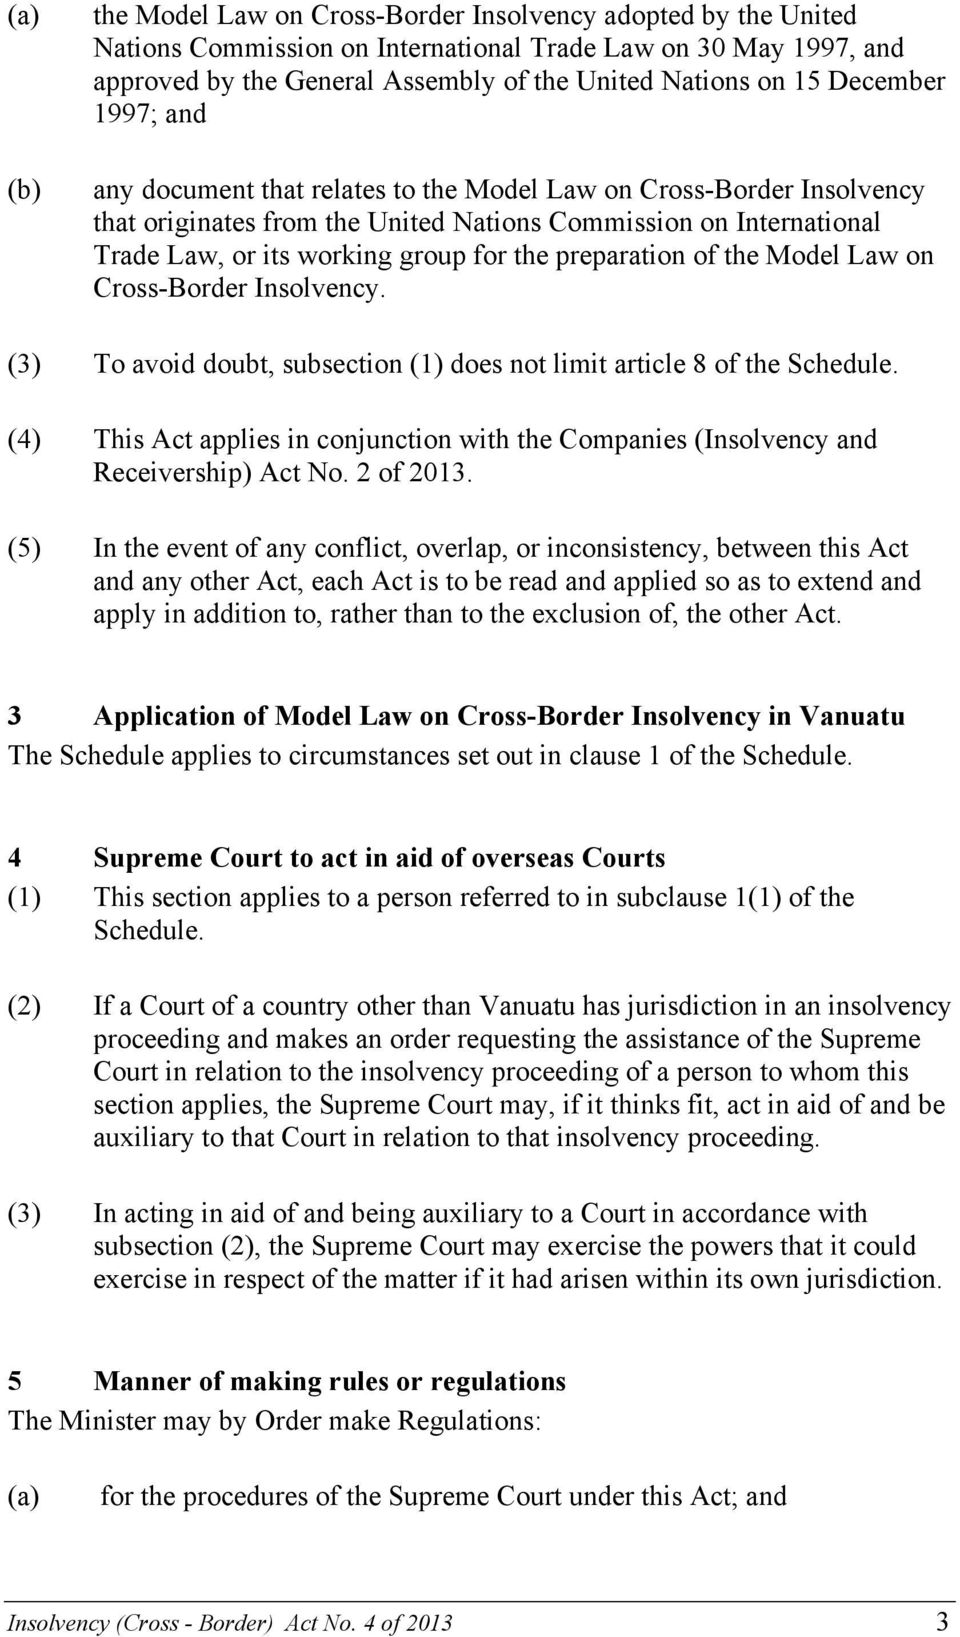 of the Model Law on Cross-Border Insolvency. (3) To avoid doubt, subsection (1) does not limit article 8 of the Schedule.